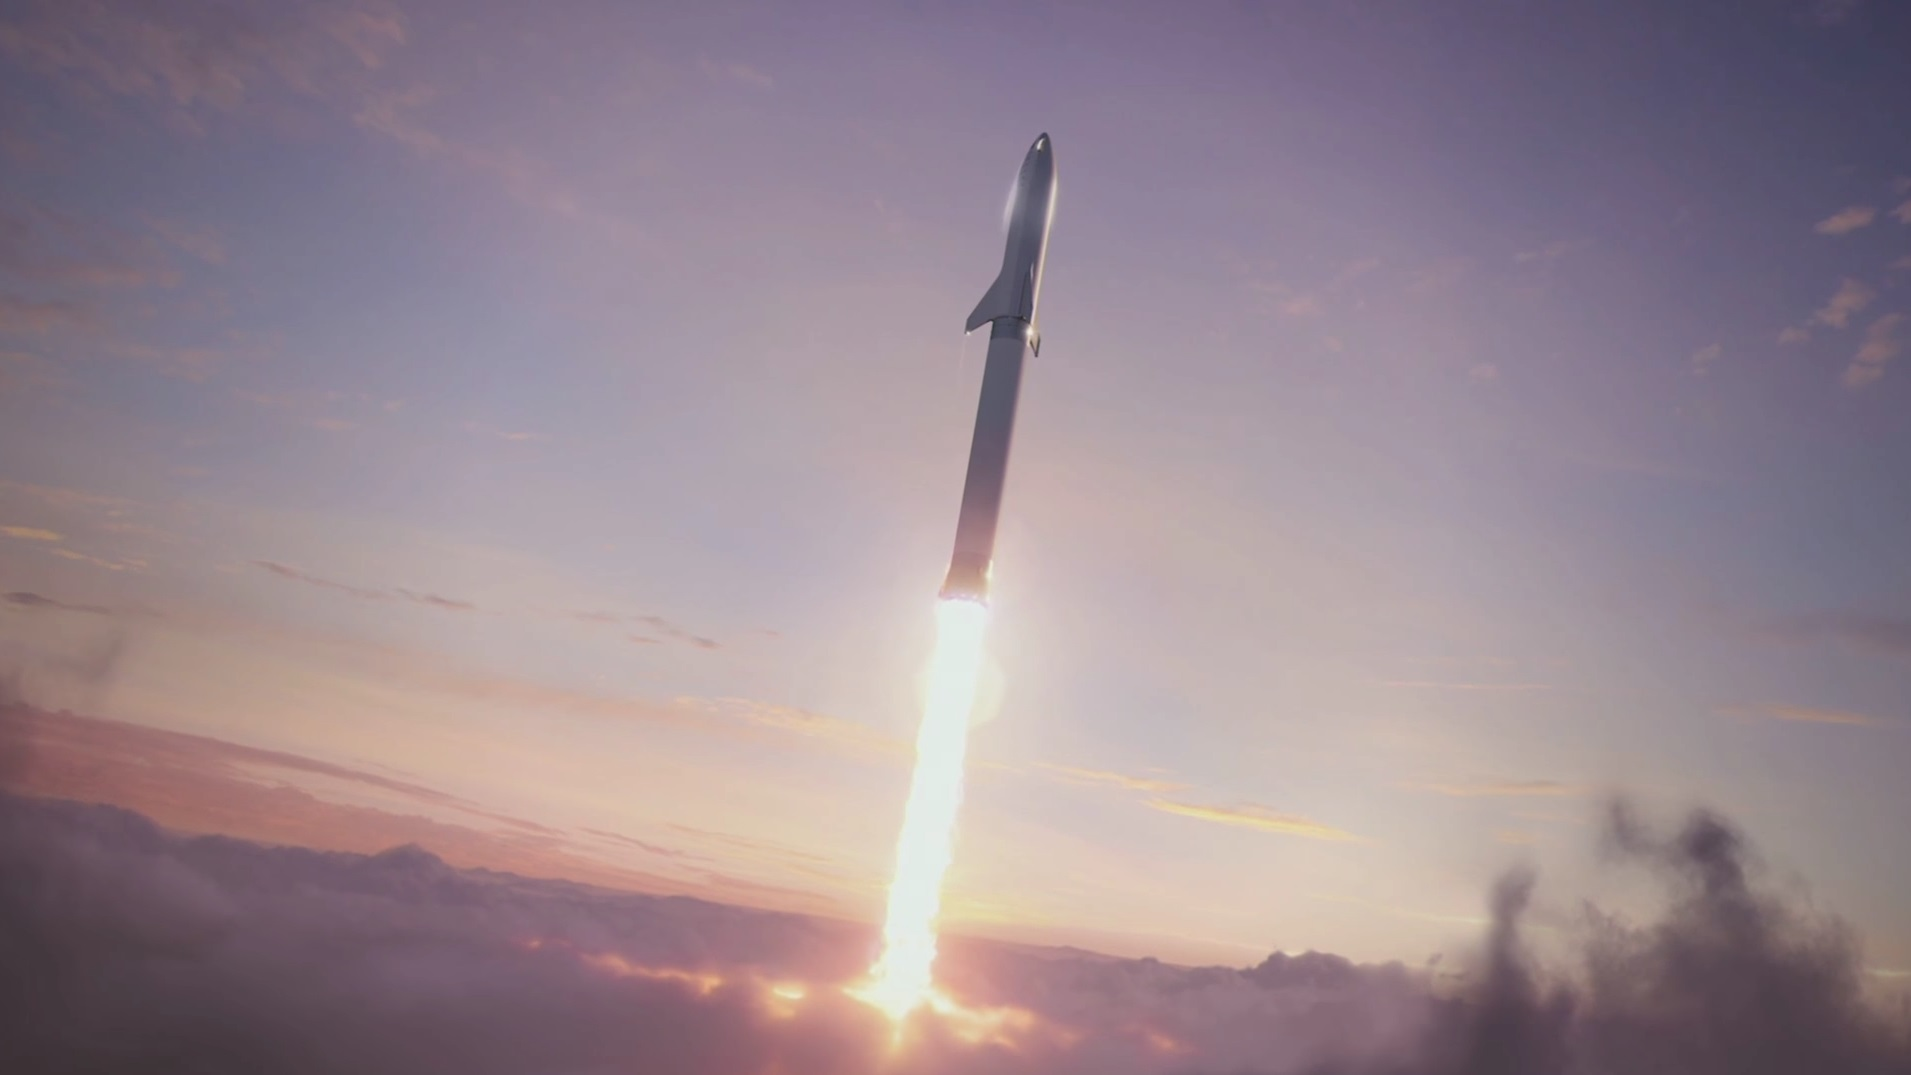 18 new details about Elon Musk's redesigned, moon-bound 'Big F*ing Rocket' spacex5